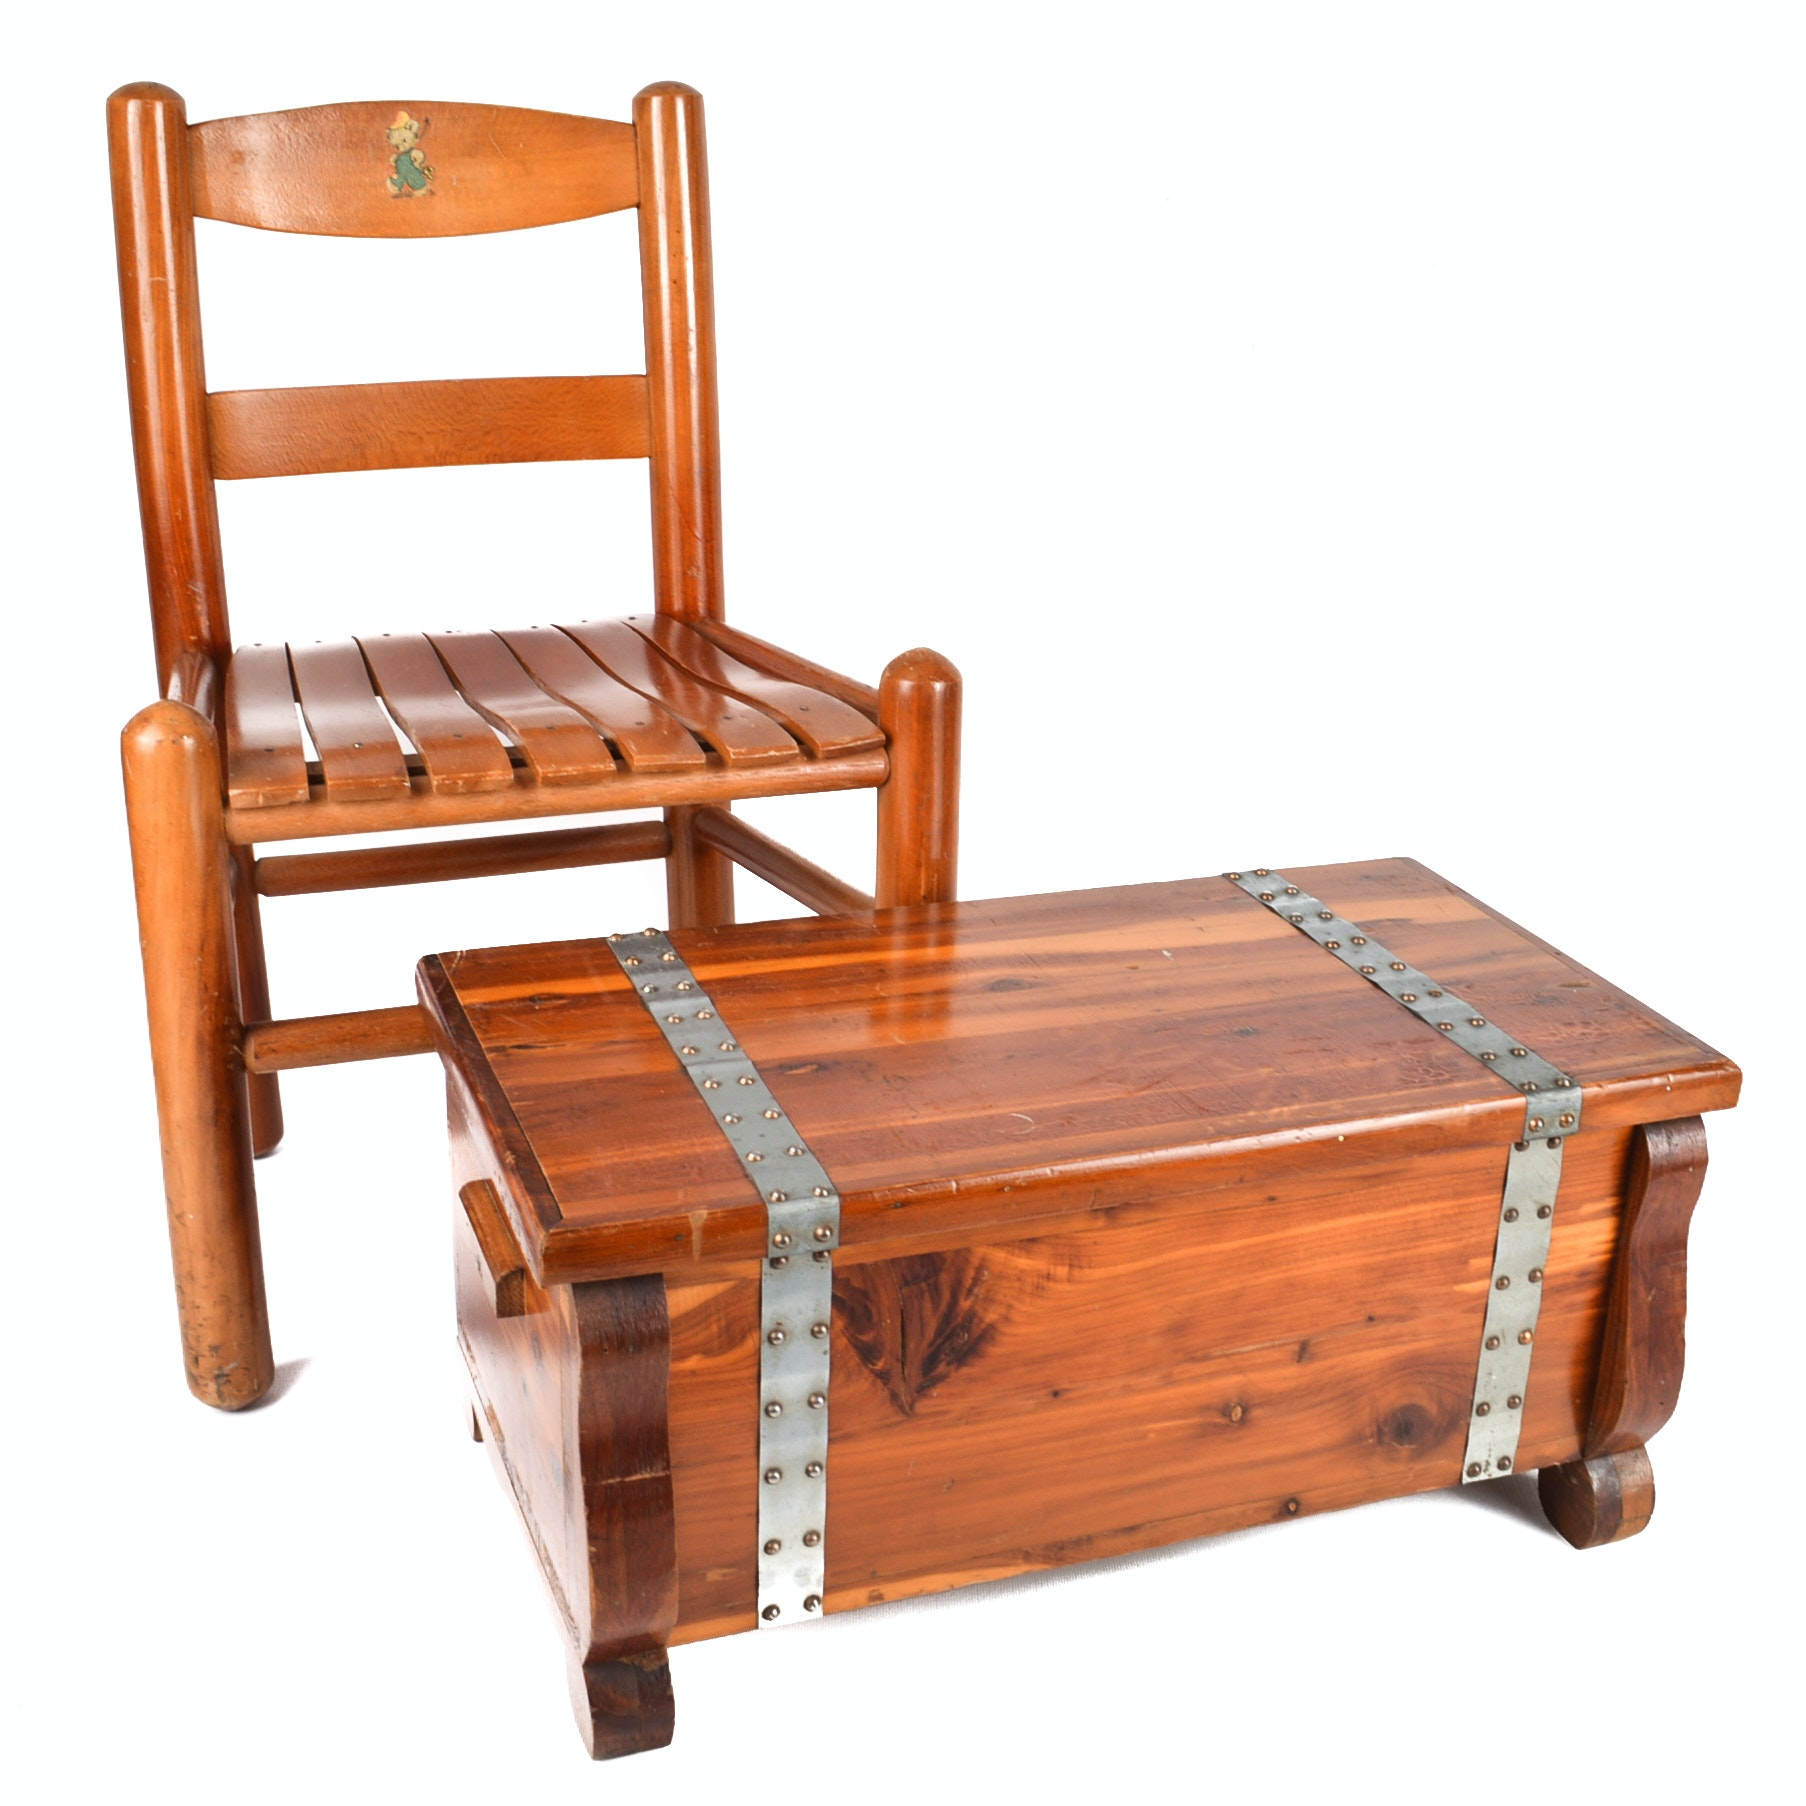 Small Cedar Chest and Child's Chair